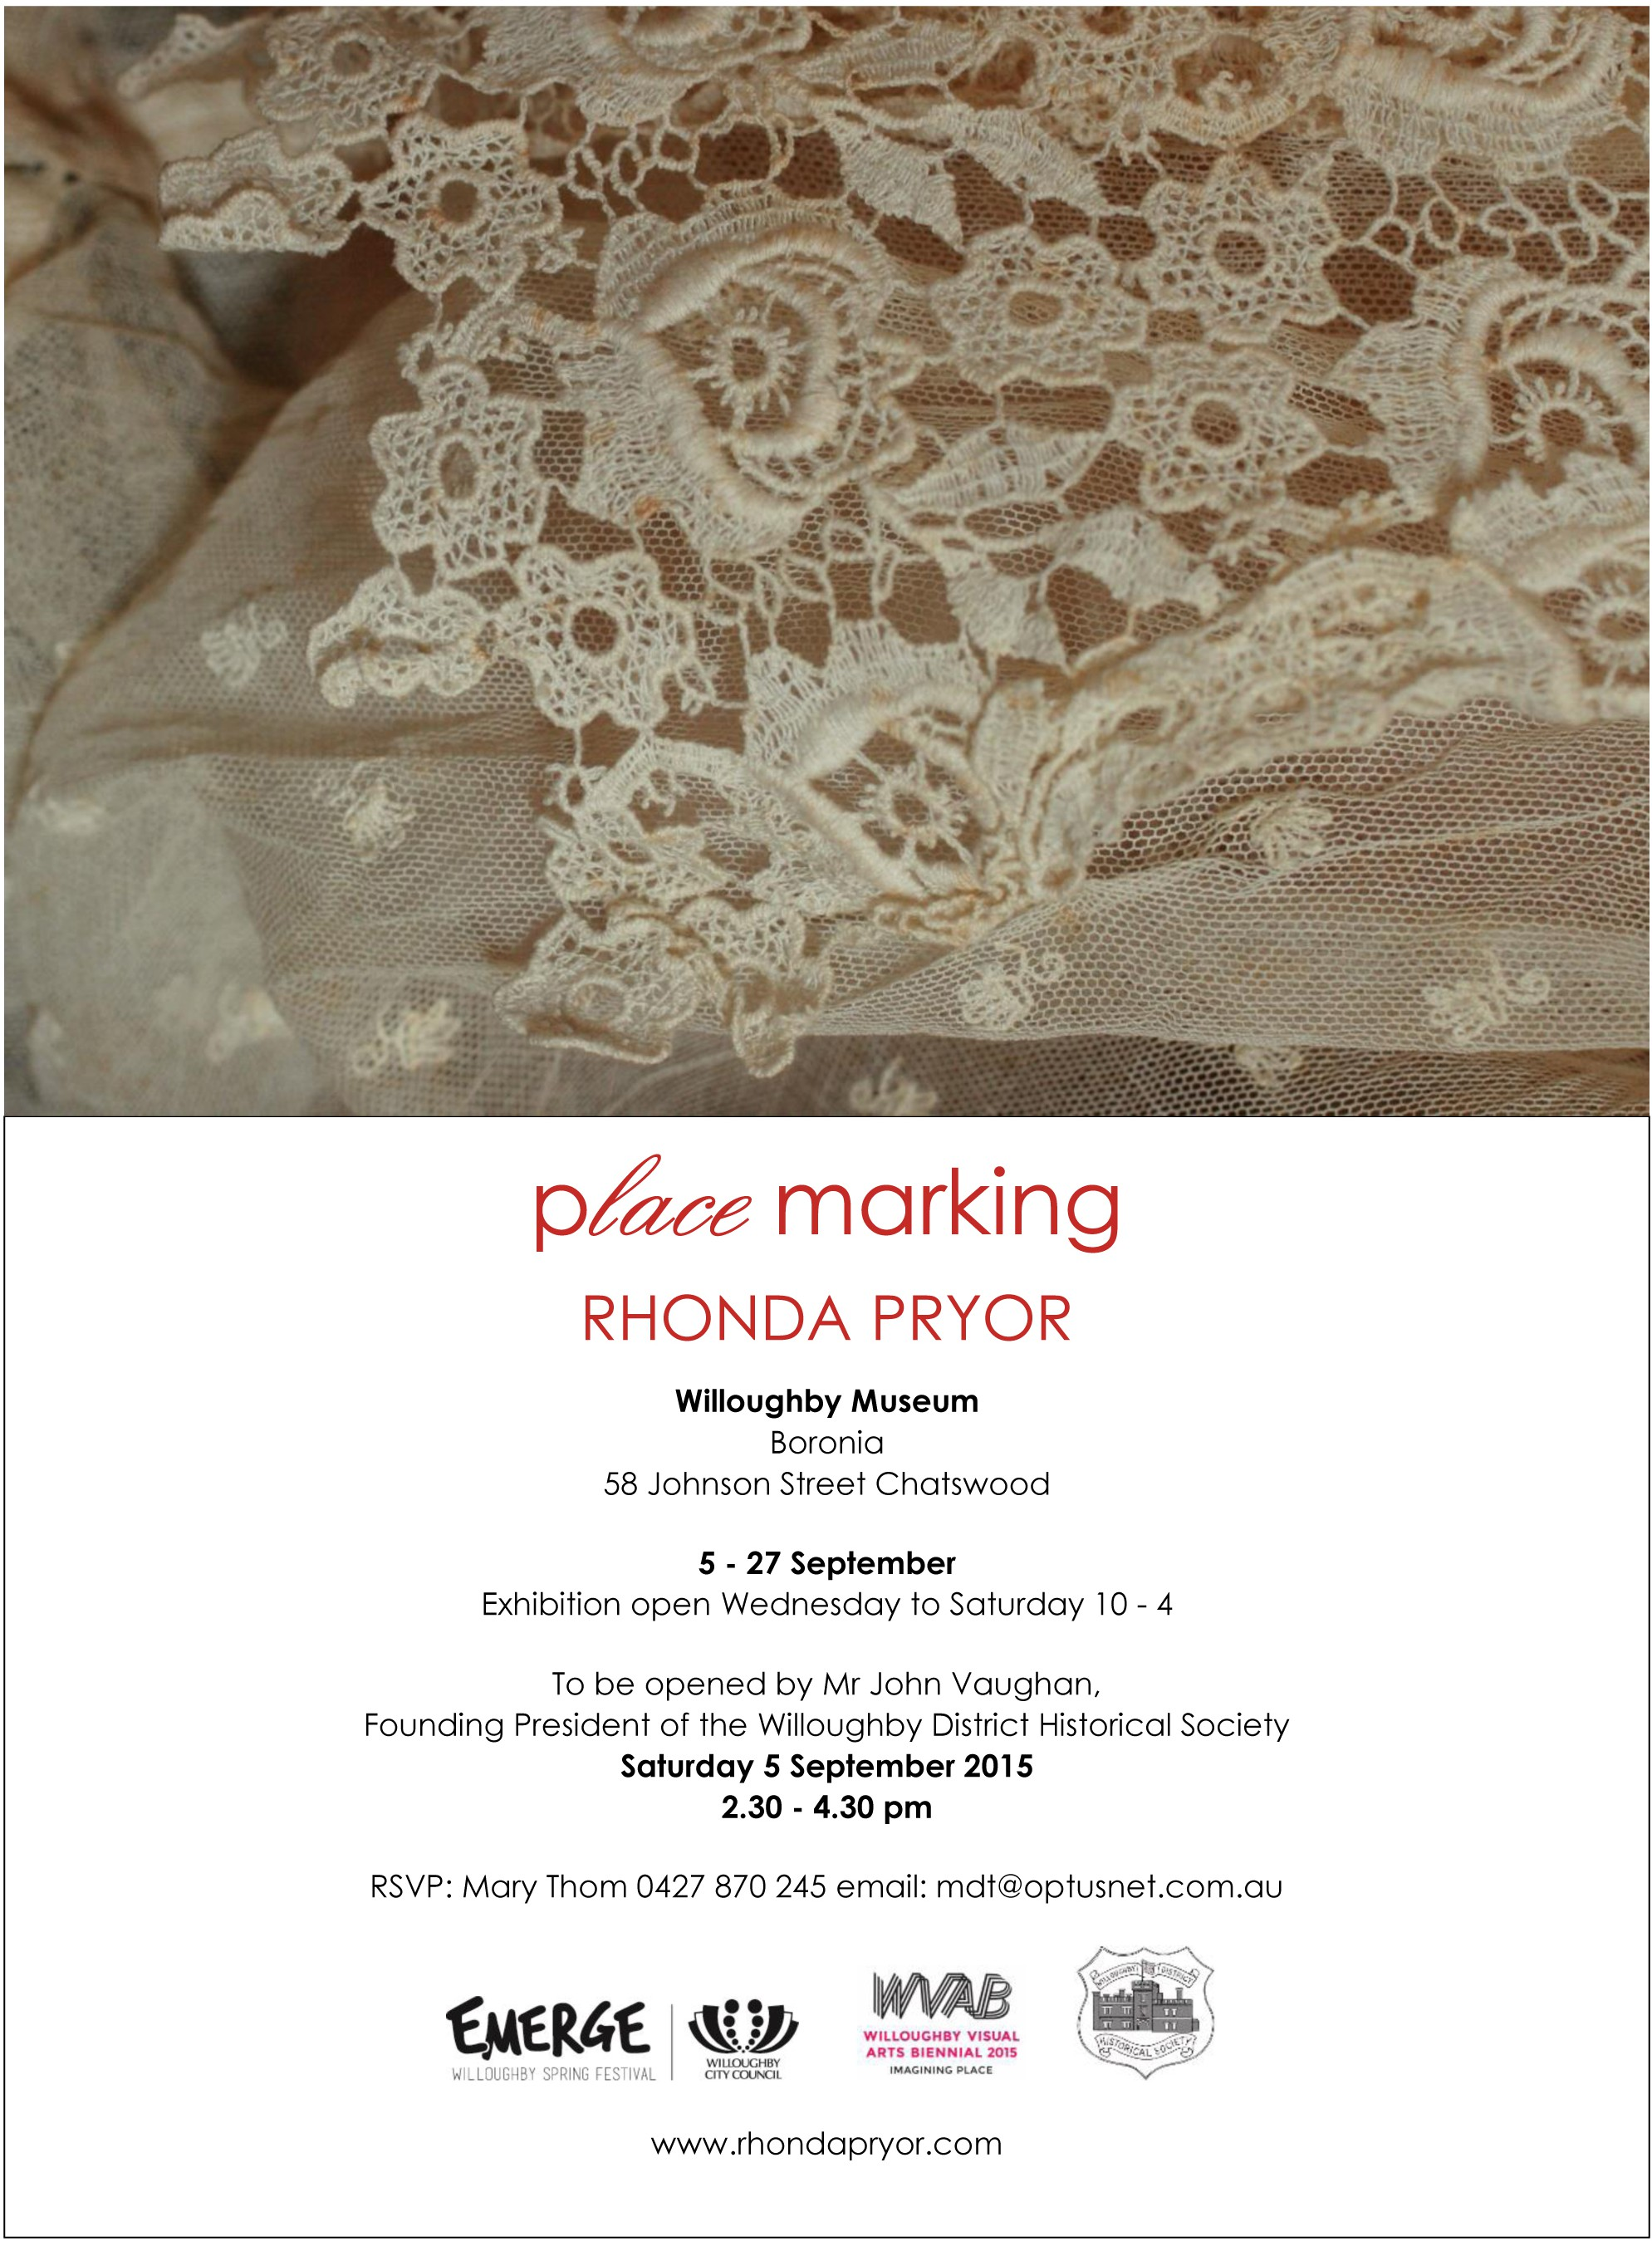 Placemarking invitation